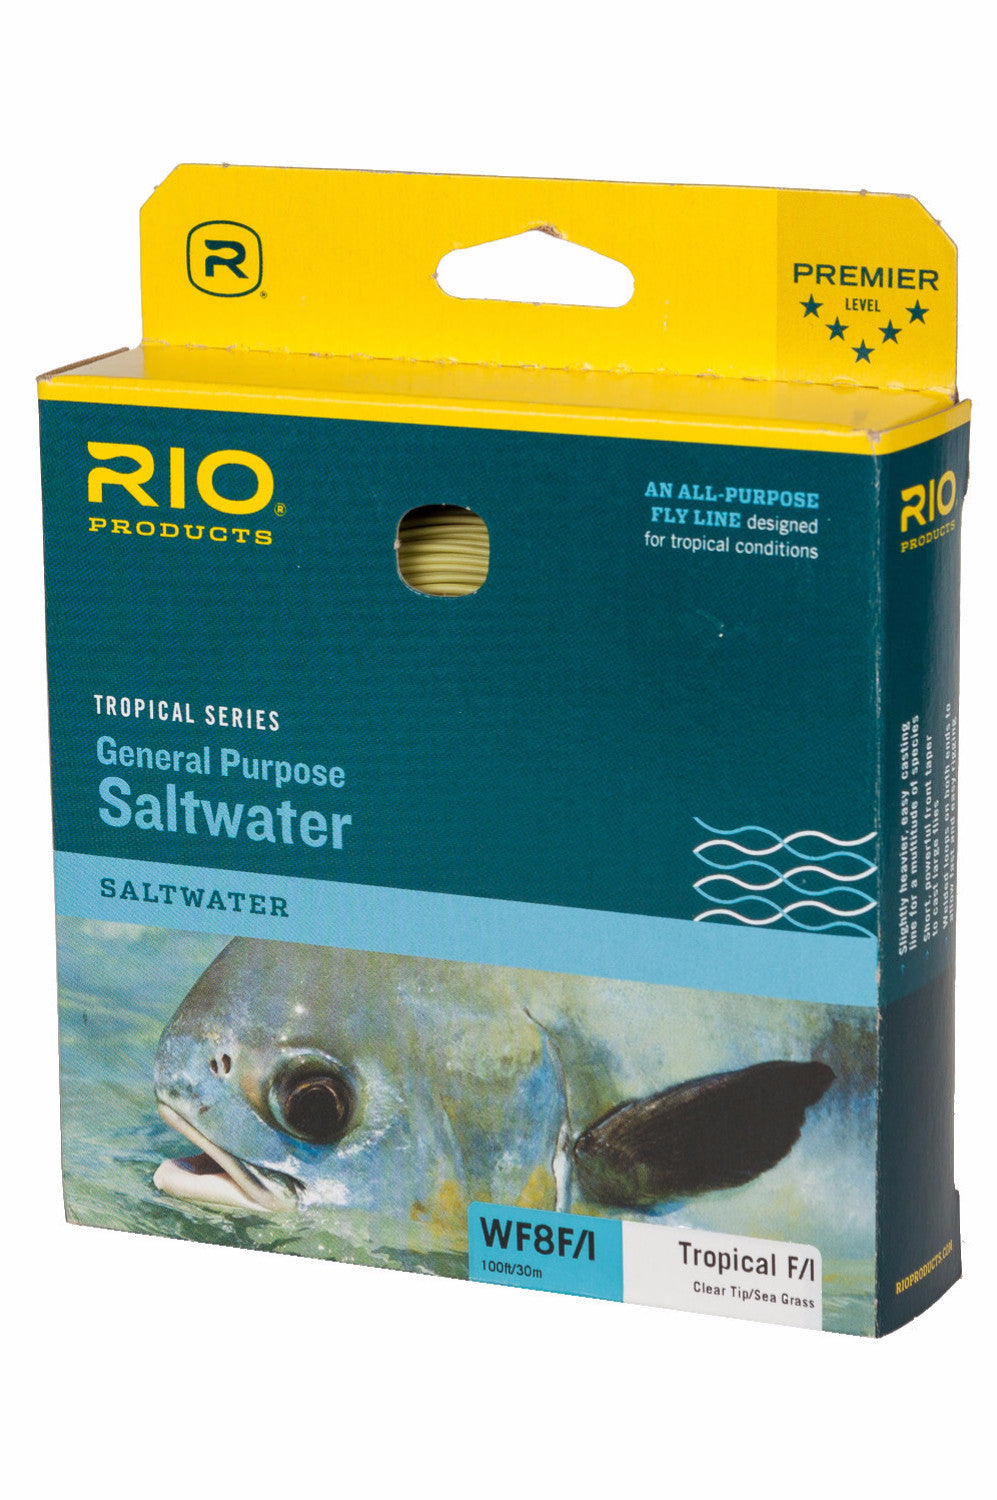 RIO Tropical Series General Purpose Saltwater F/I Fly Line